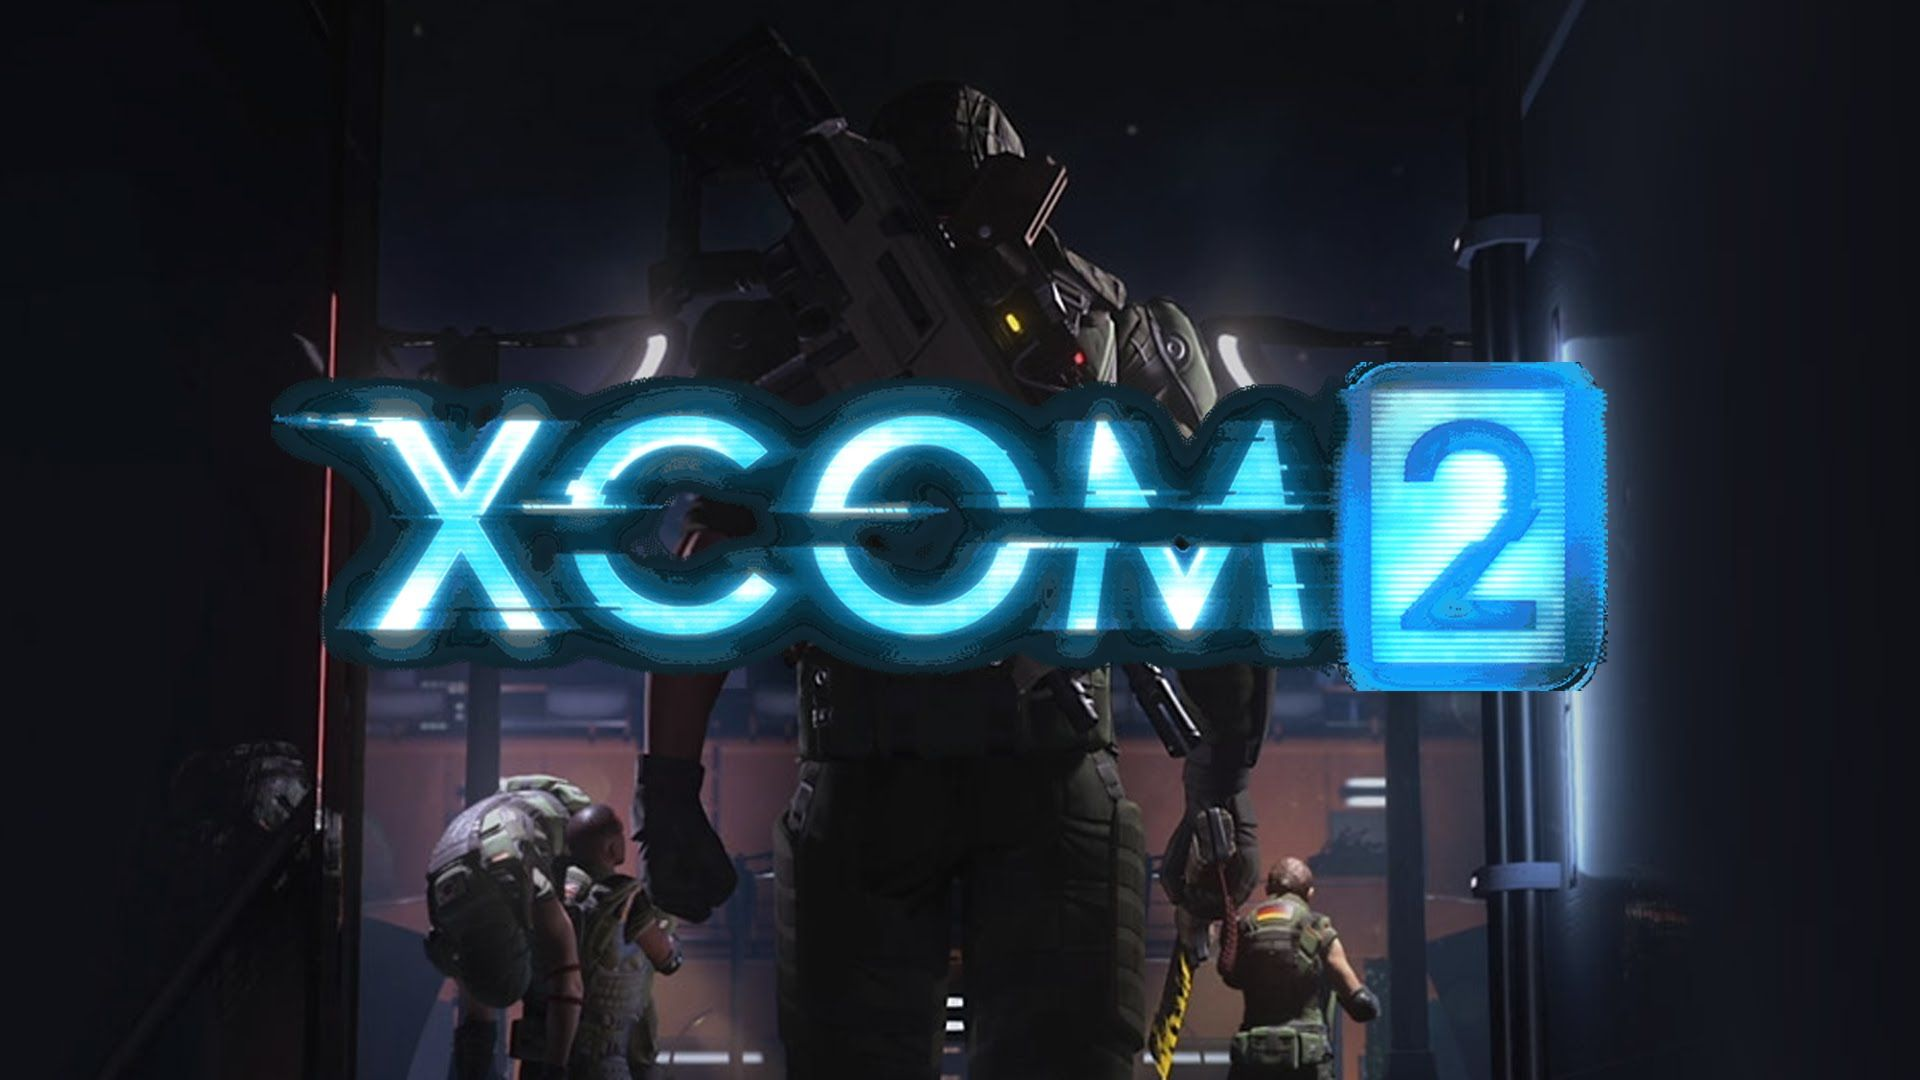 xcom wallpapers hd high quality download 1920×1080 x com 2